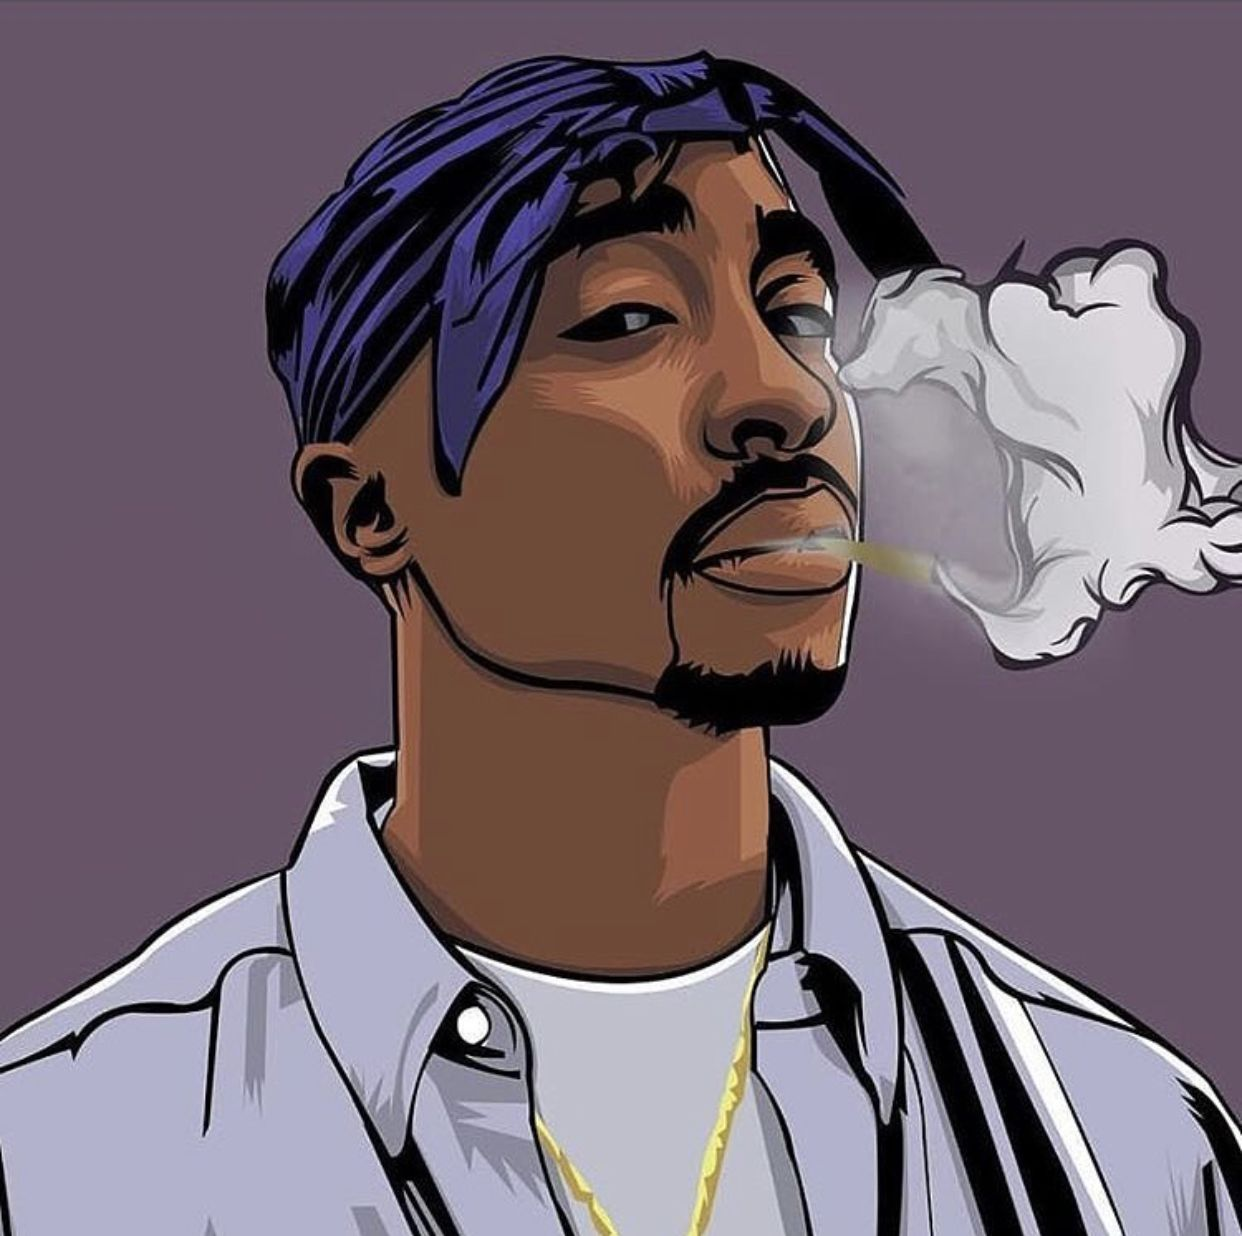 Pin By Quiona Souhail On Tupac Tupac Art Hip Hop Art 2pac Art